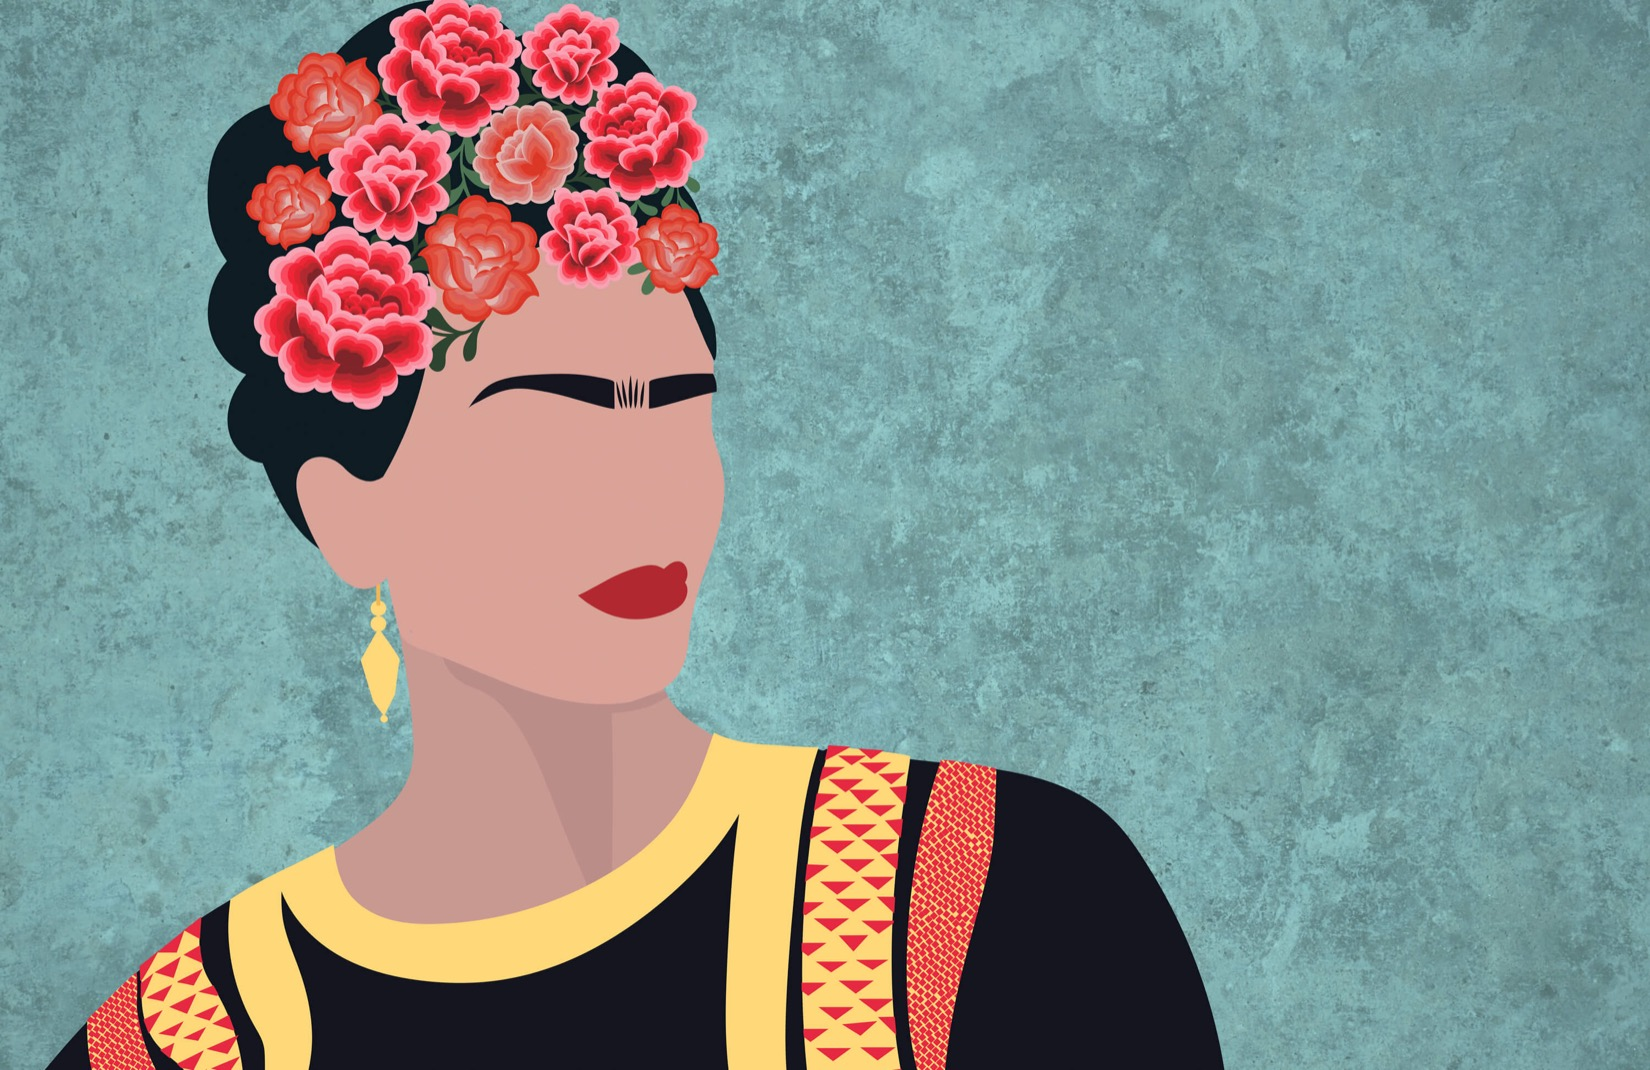 Free Download Frida Kahlo Portrait Floral Wallpaper Mural